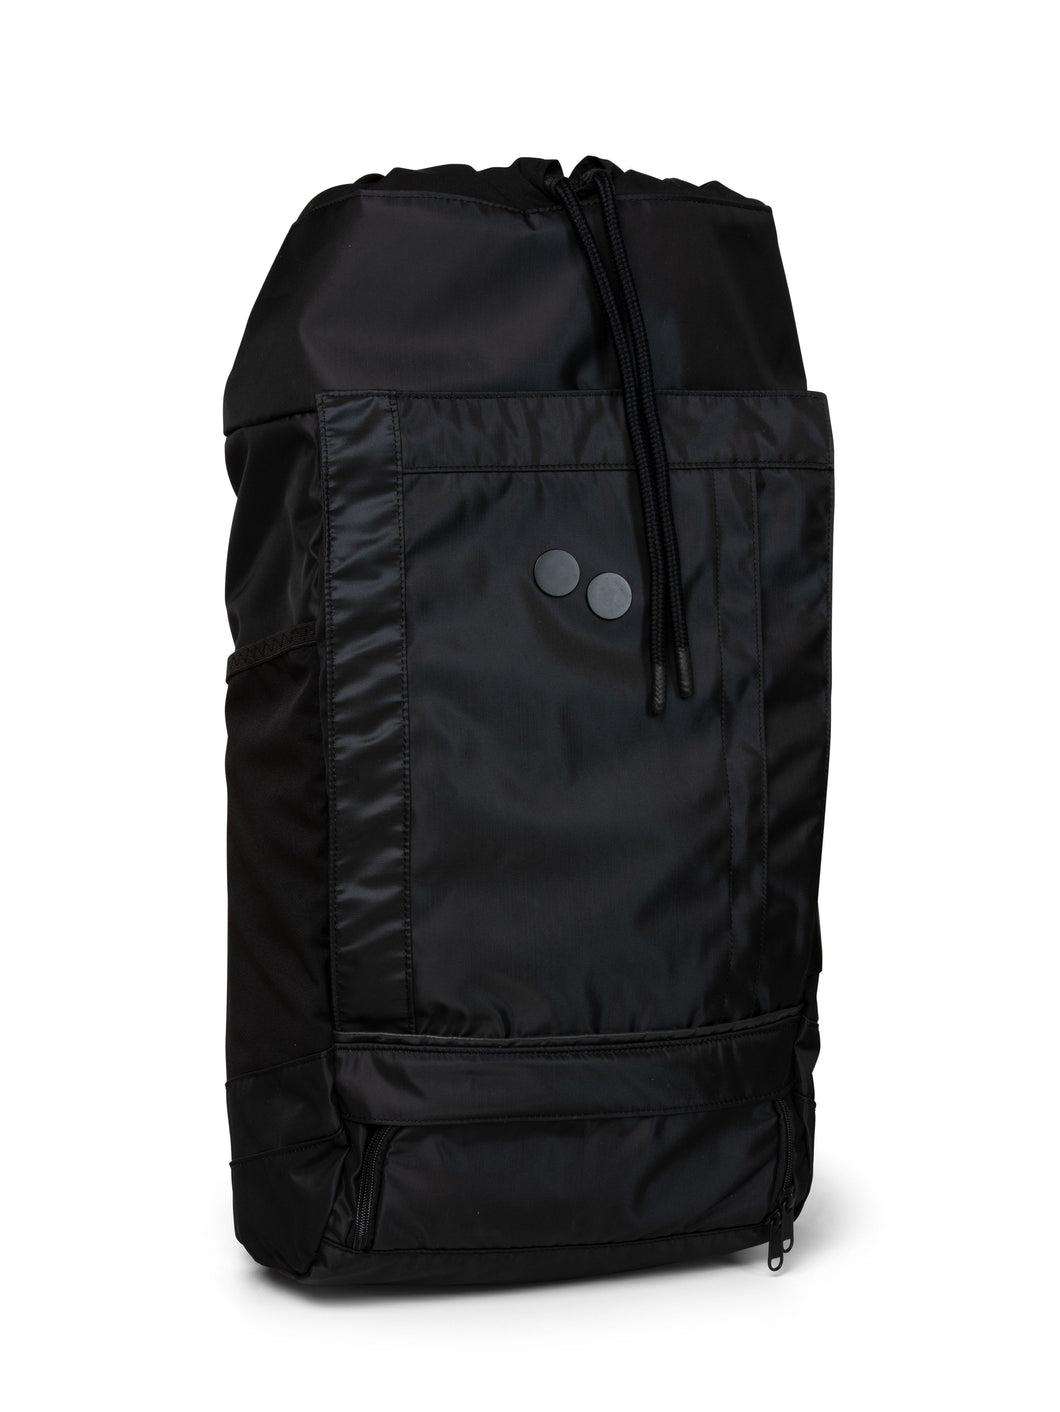 pinqponq Blok Large Backpack